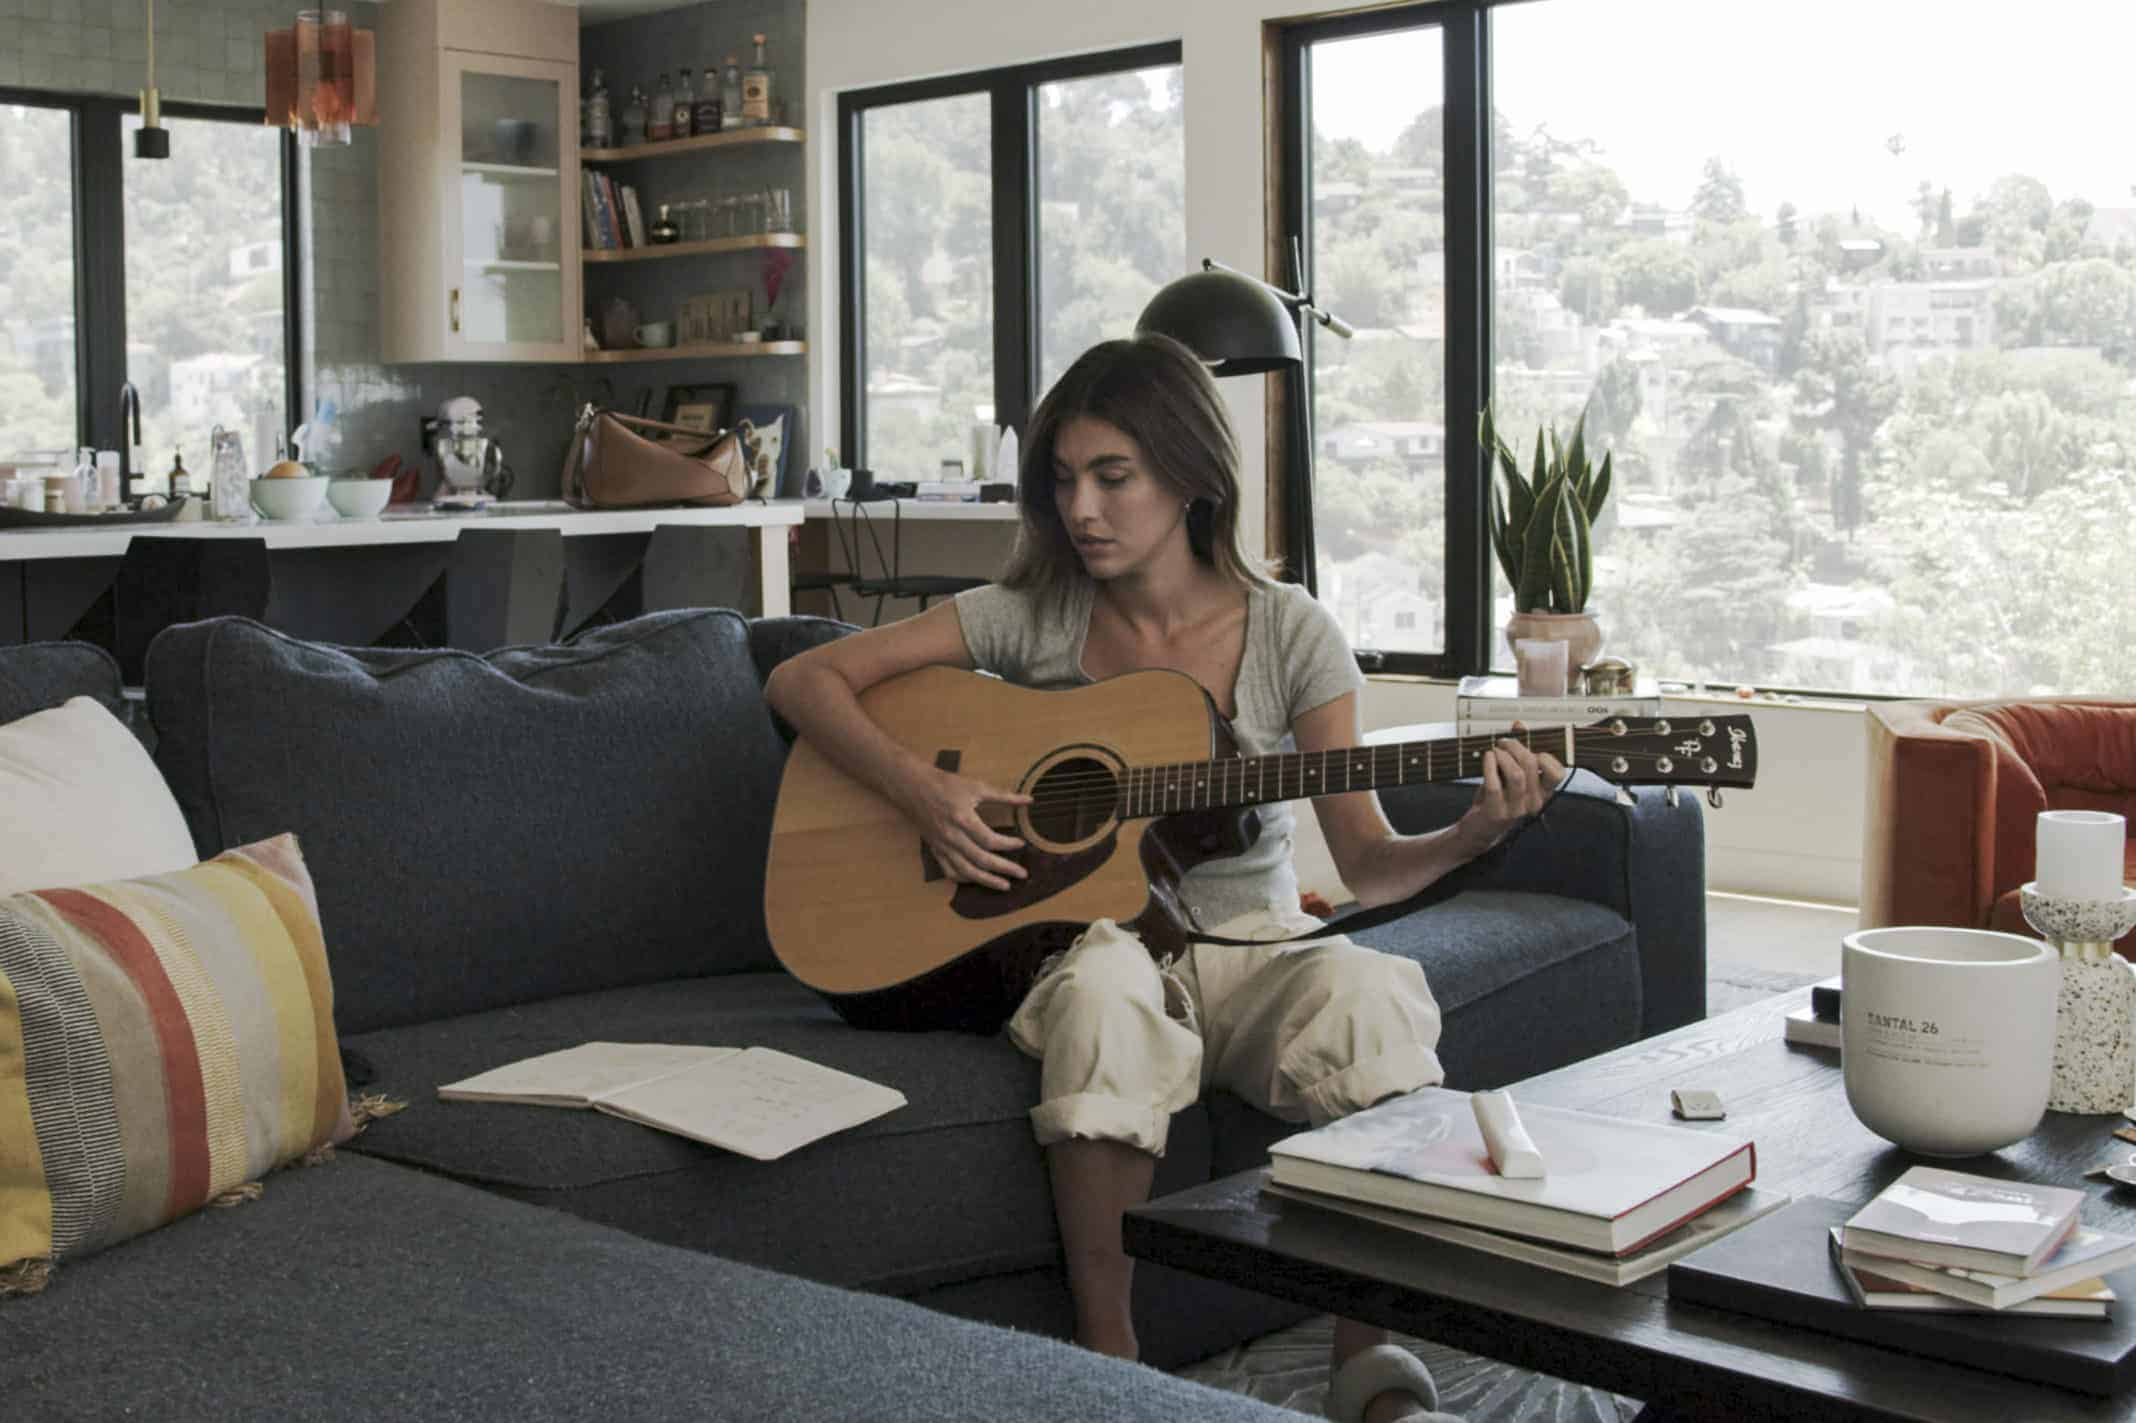 Elle (Rainey Qualley) playing her guitar.